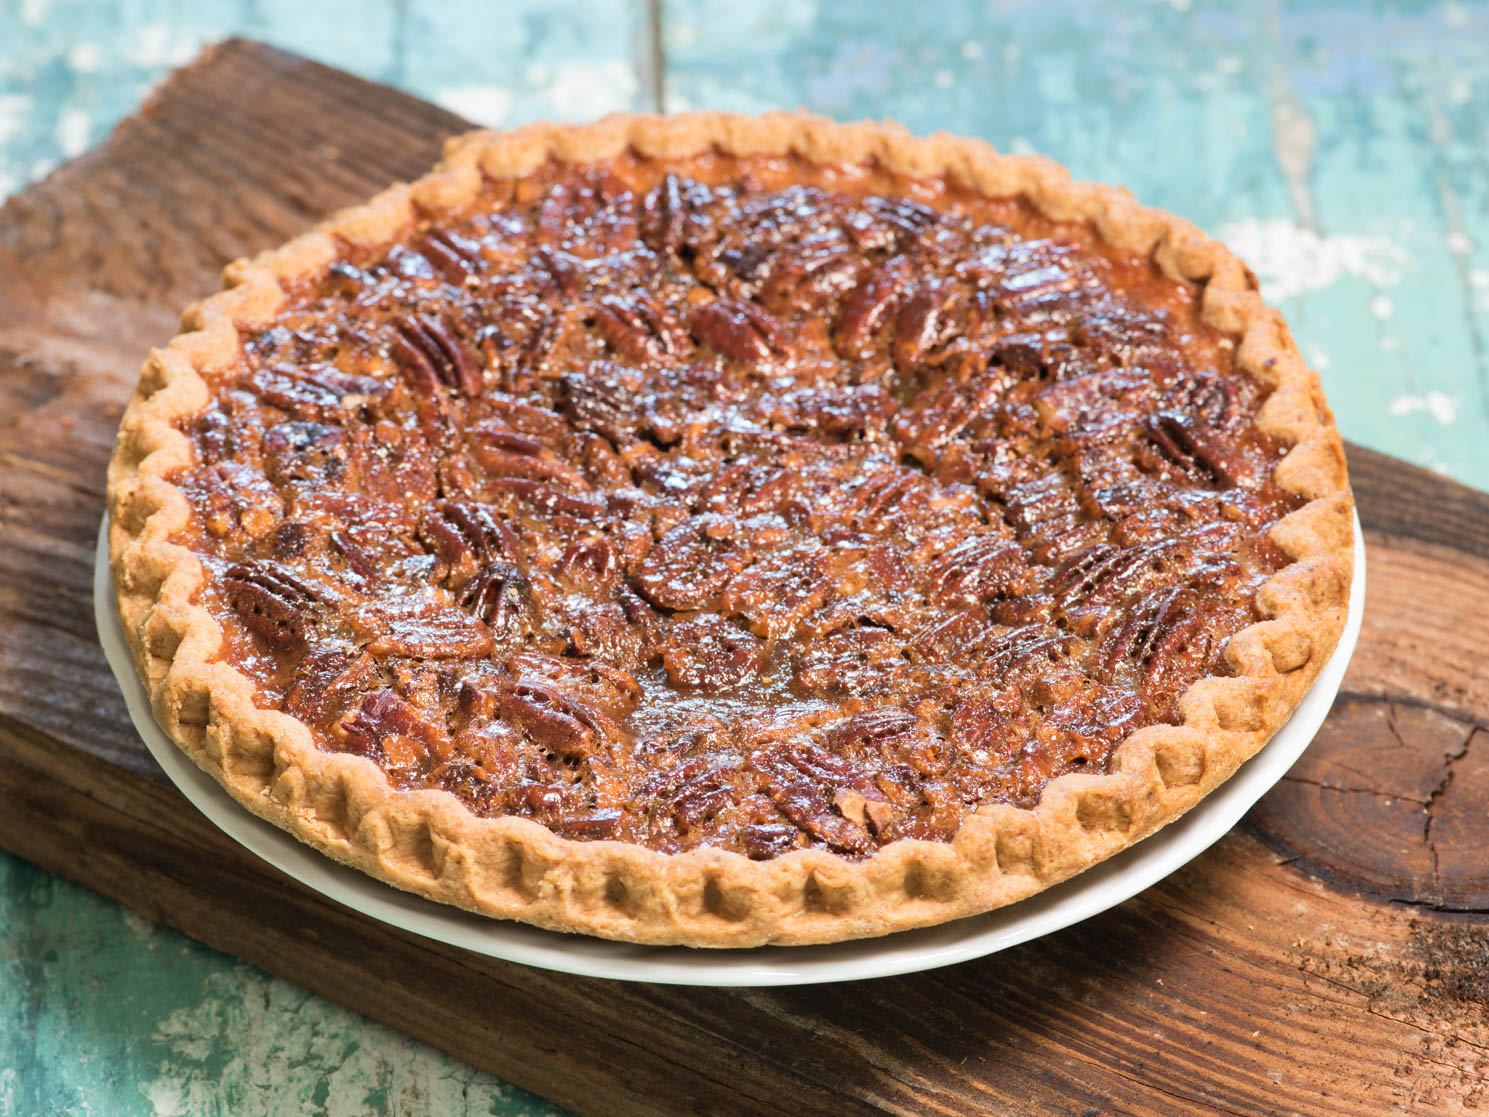 Picture Utterly Deadly Sourn Pecan Pie Recipe Genius Kitchen Sourn Pecan Pie Recipe Divas Can Cook Sourn Pecan Pie Recipe Corn Syrup nice food Southern Pecan Pie Recipe